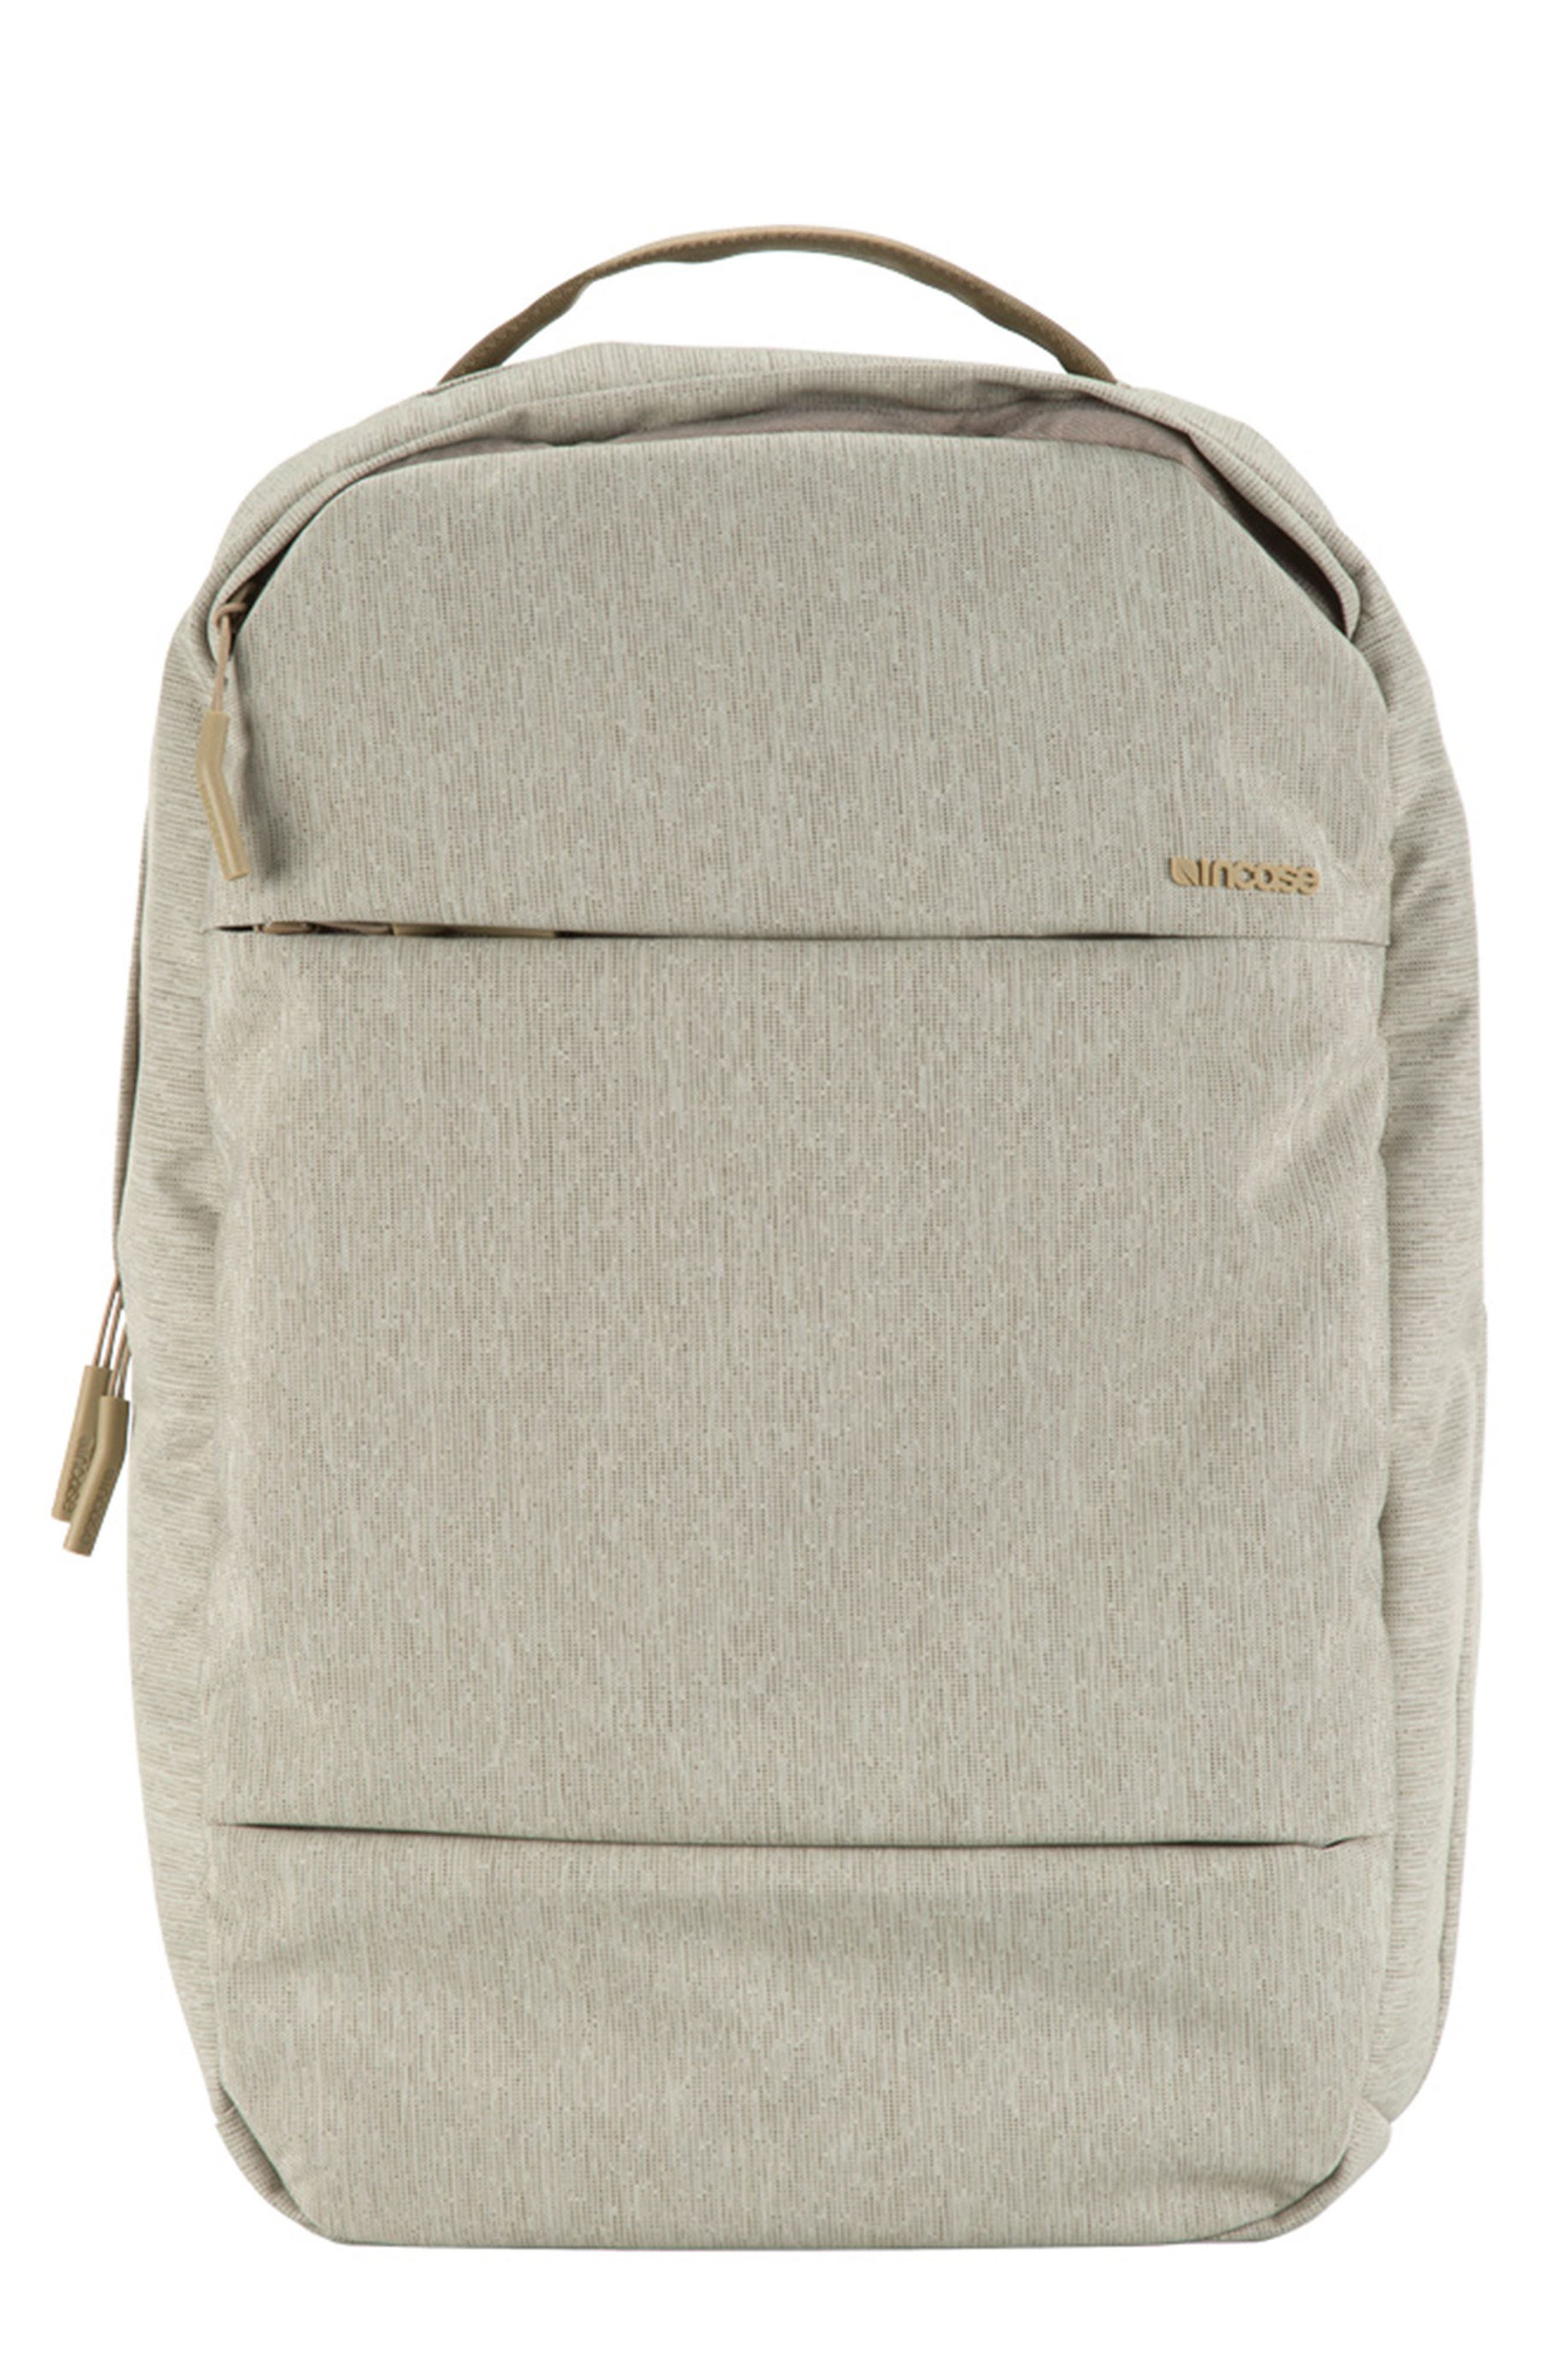 City Compact Backpack,                             Main thumbnail 1, color,                             HEATHER KHAKI